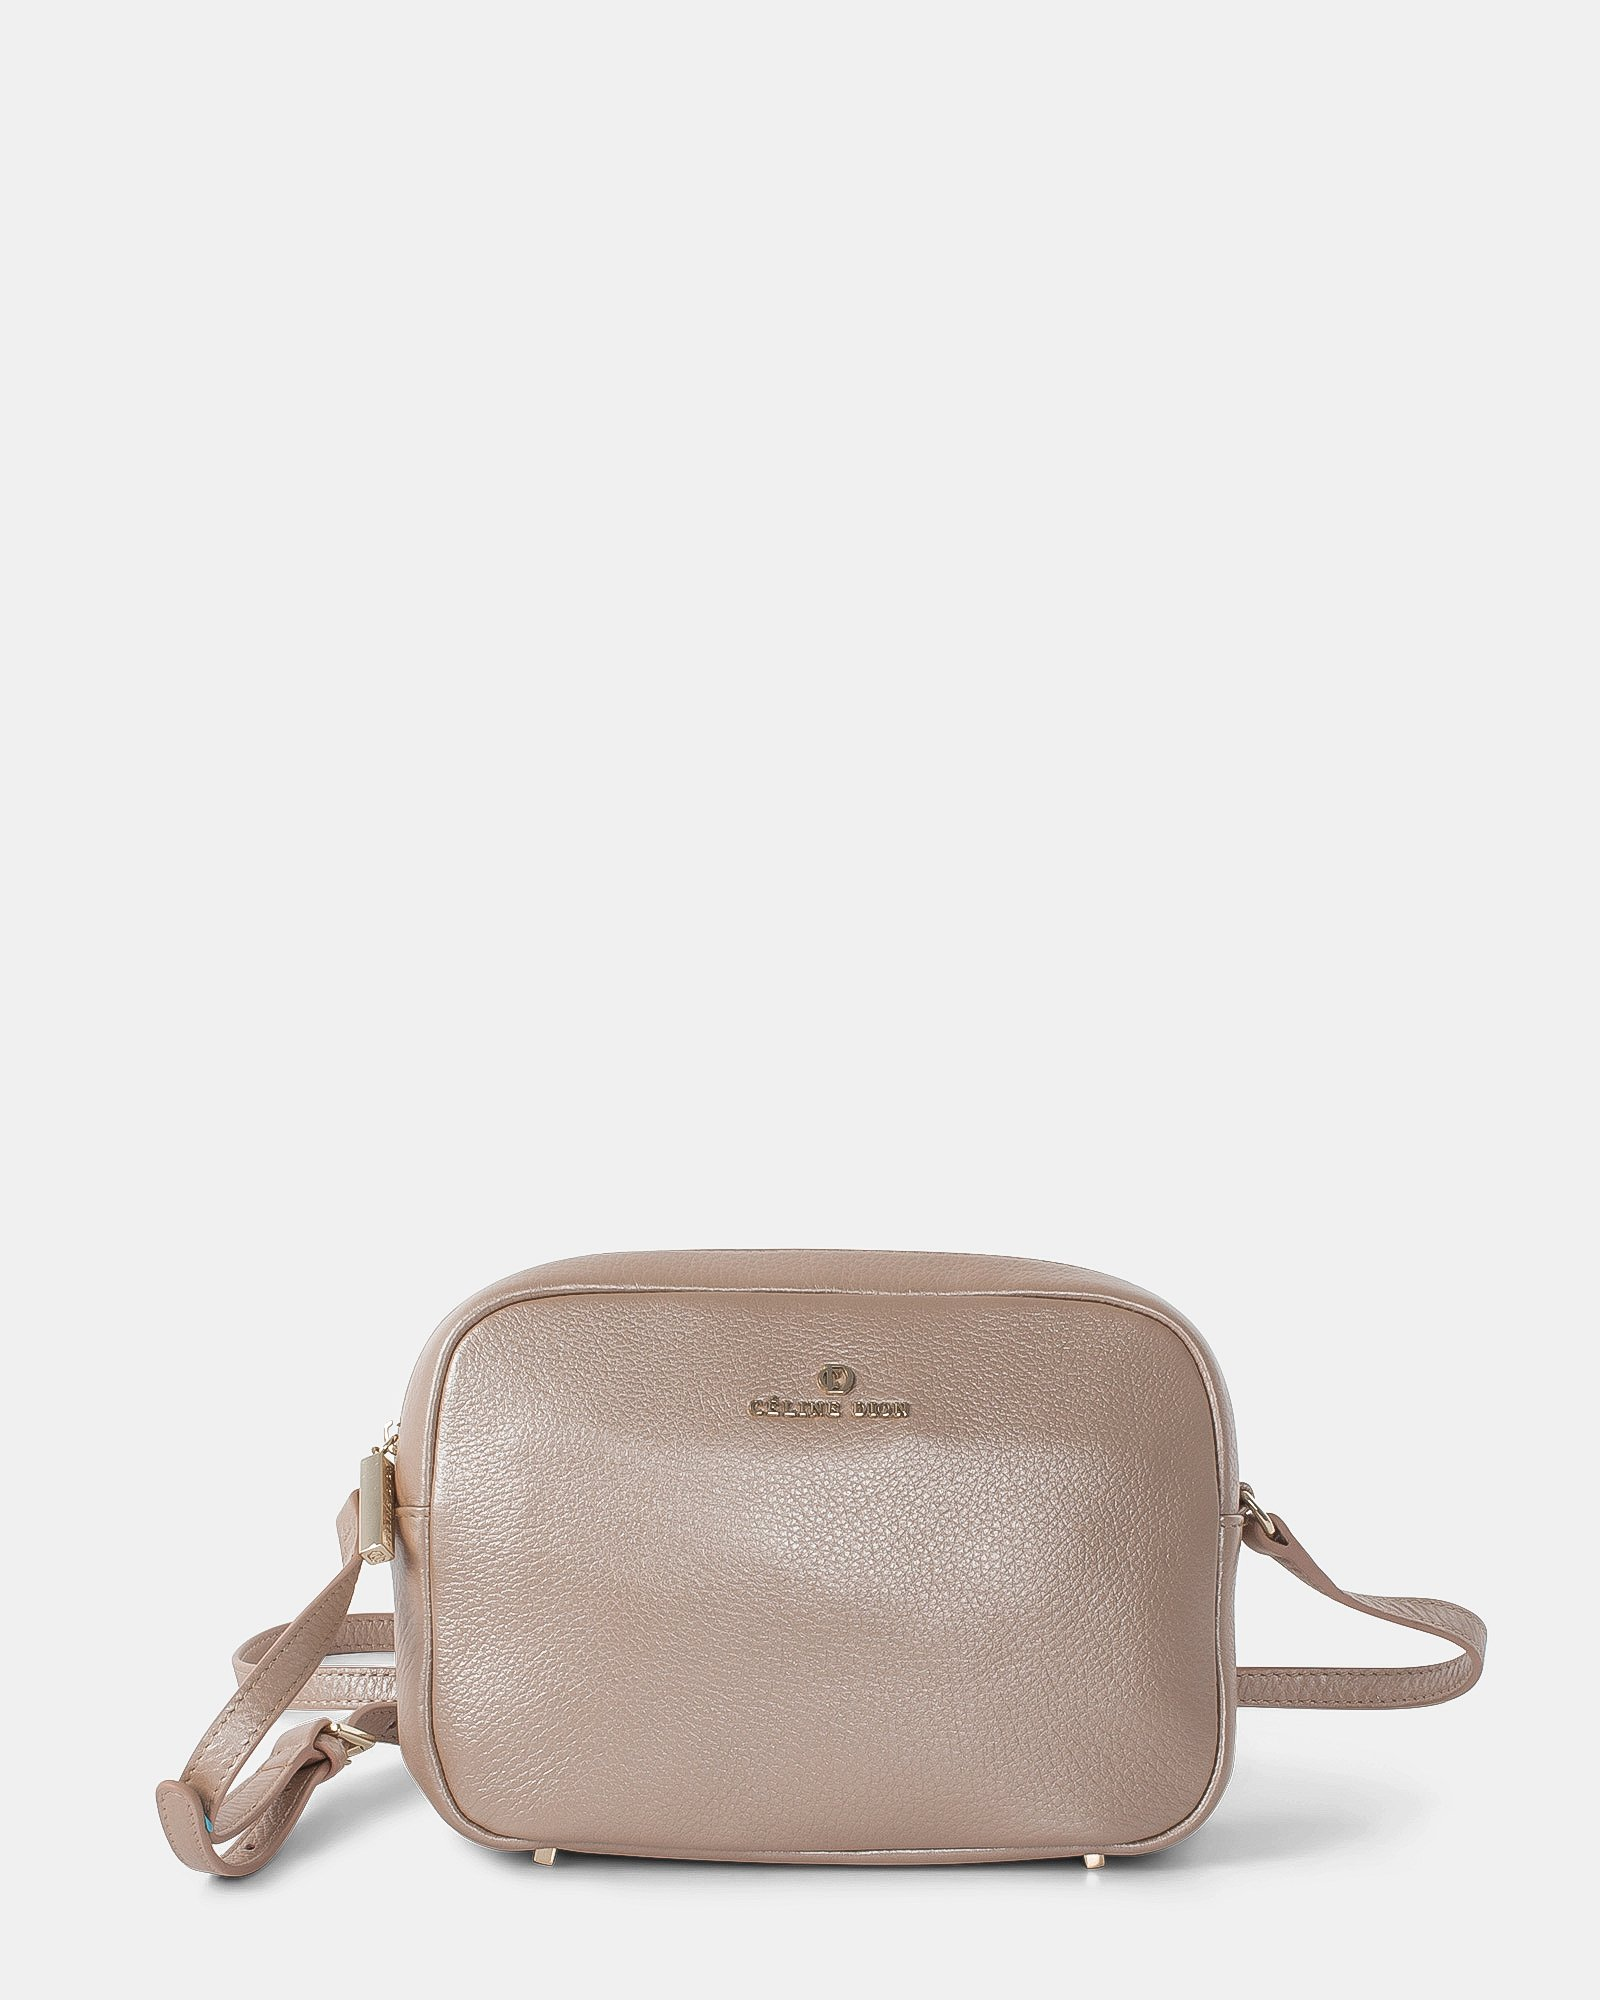 ADAGIO - LEATHER CROSSBODY BAG with Back zippered pocket - ROSEGOLD - Céline Dion - Zoom